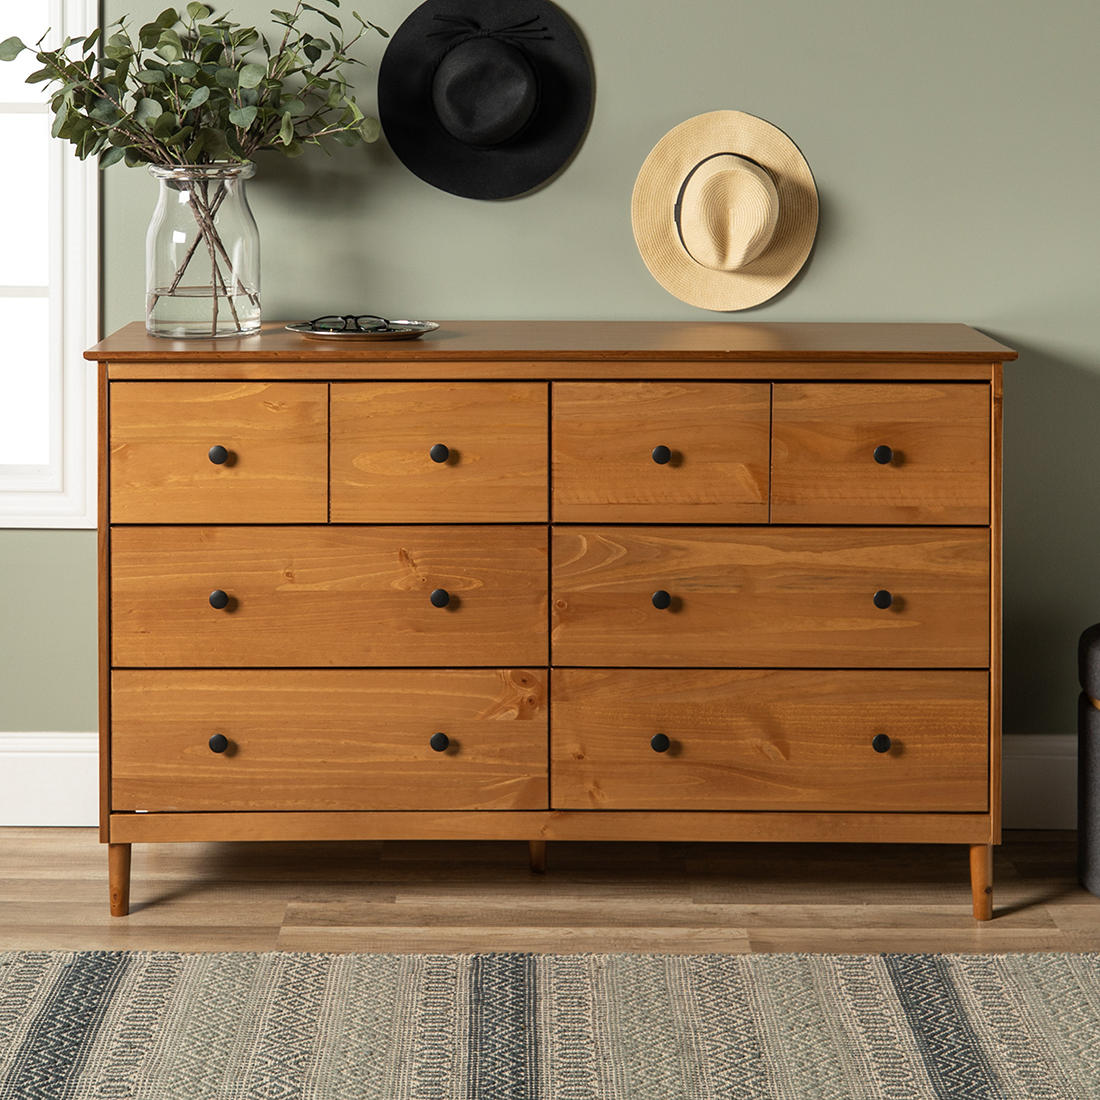 6 Drawer Solid Wood Youth Dresser